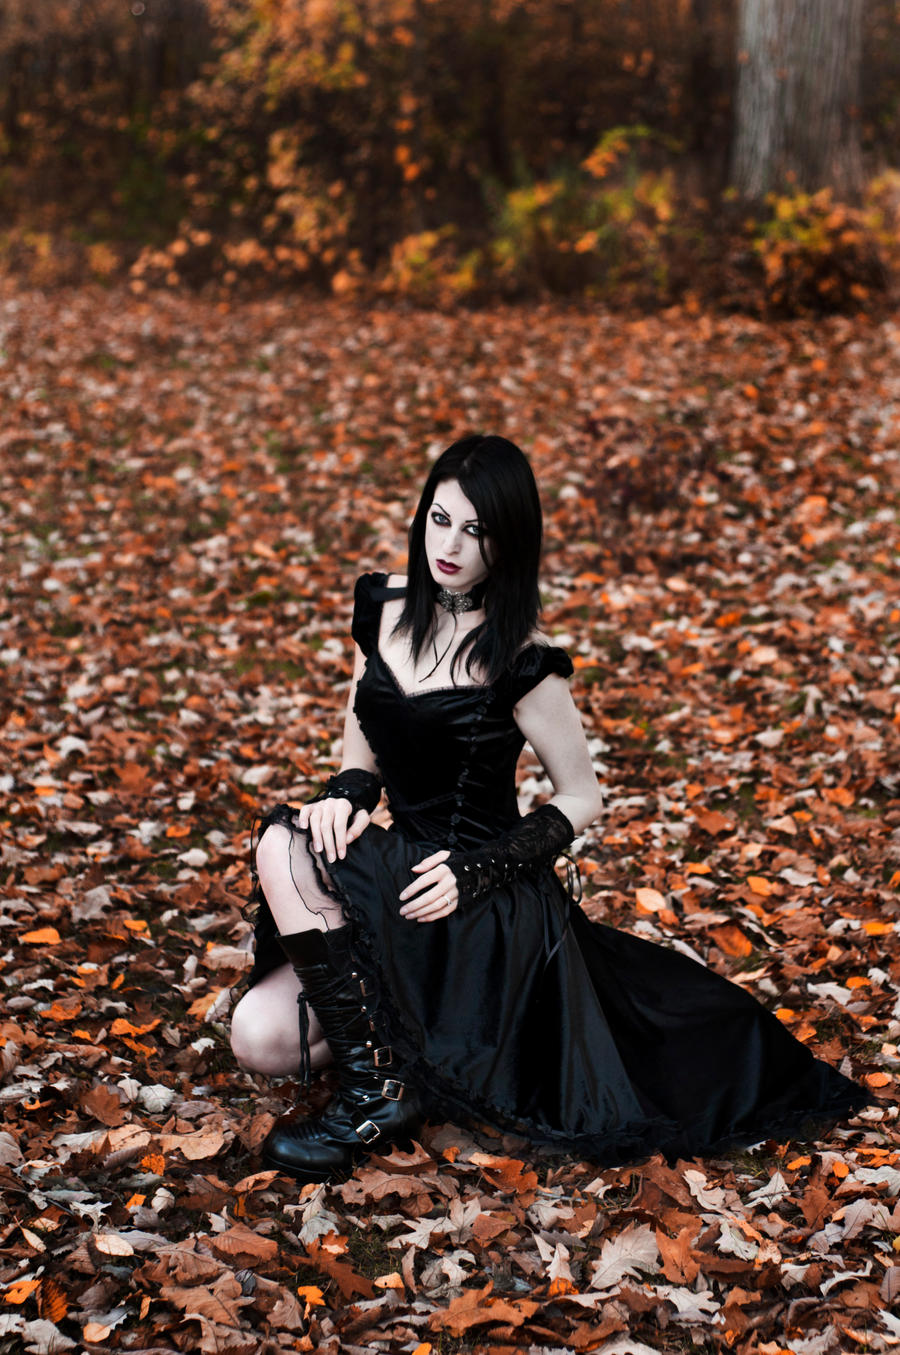 Goth Girl Stock 01 by MeetMeAtTheLake2Nite